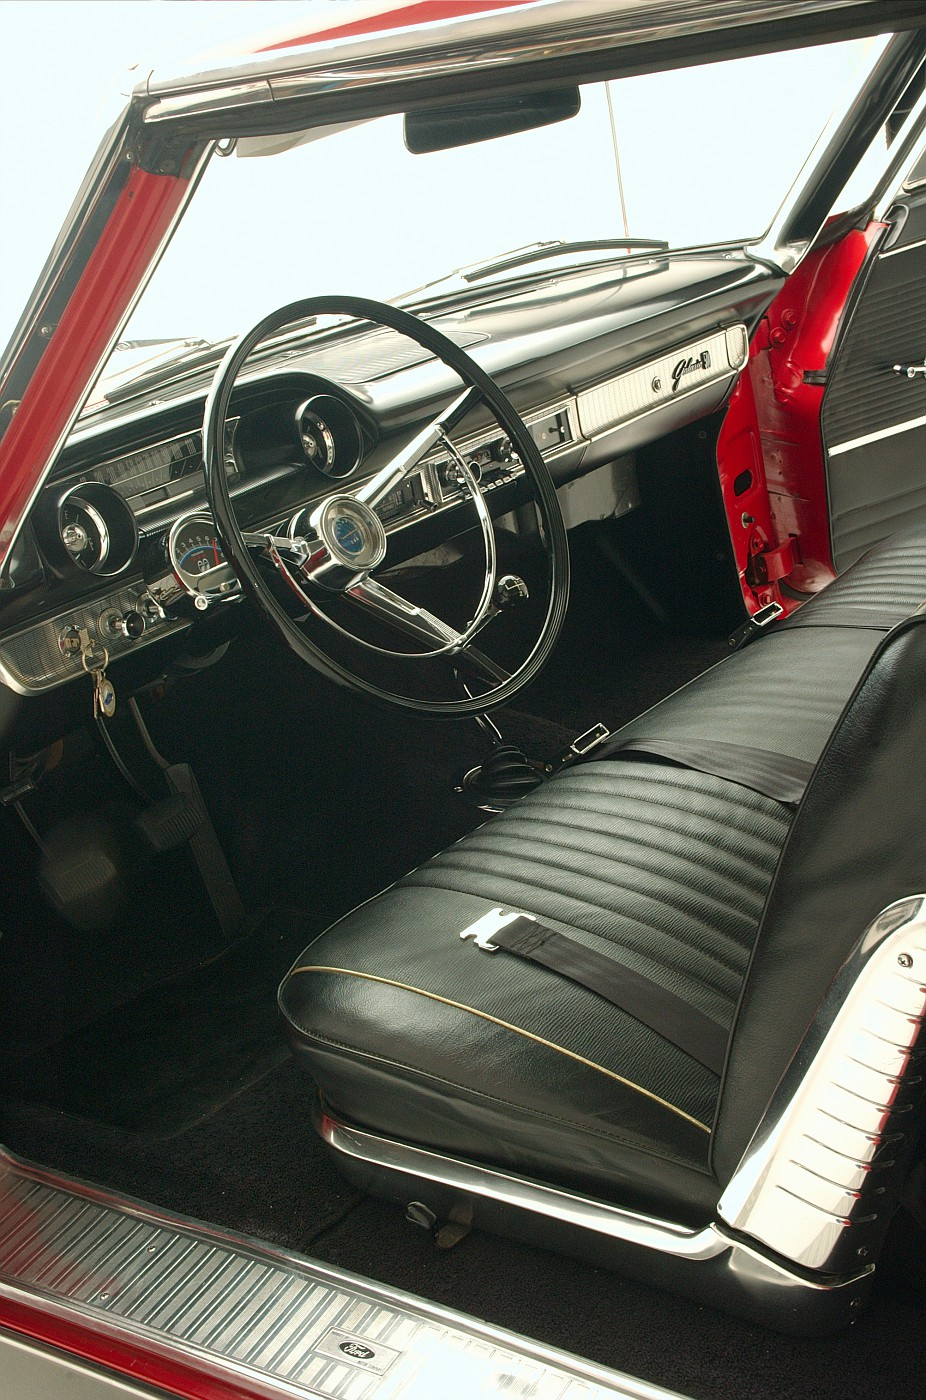 1963 Ford Galaxie 500 XL 427 R-code driver-side vertical interior view